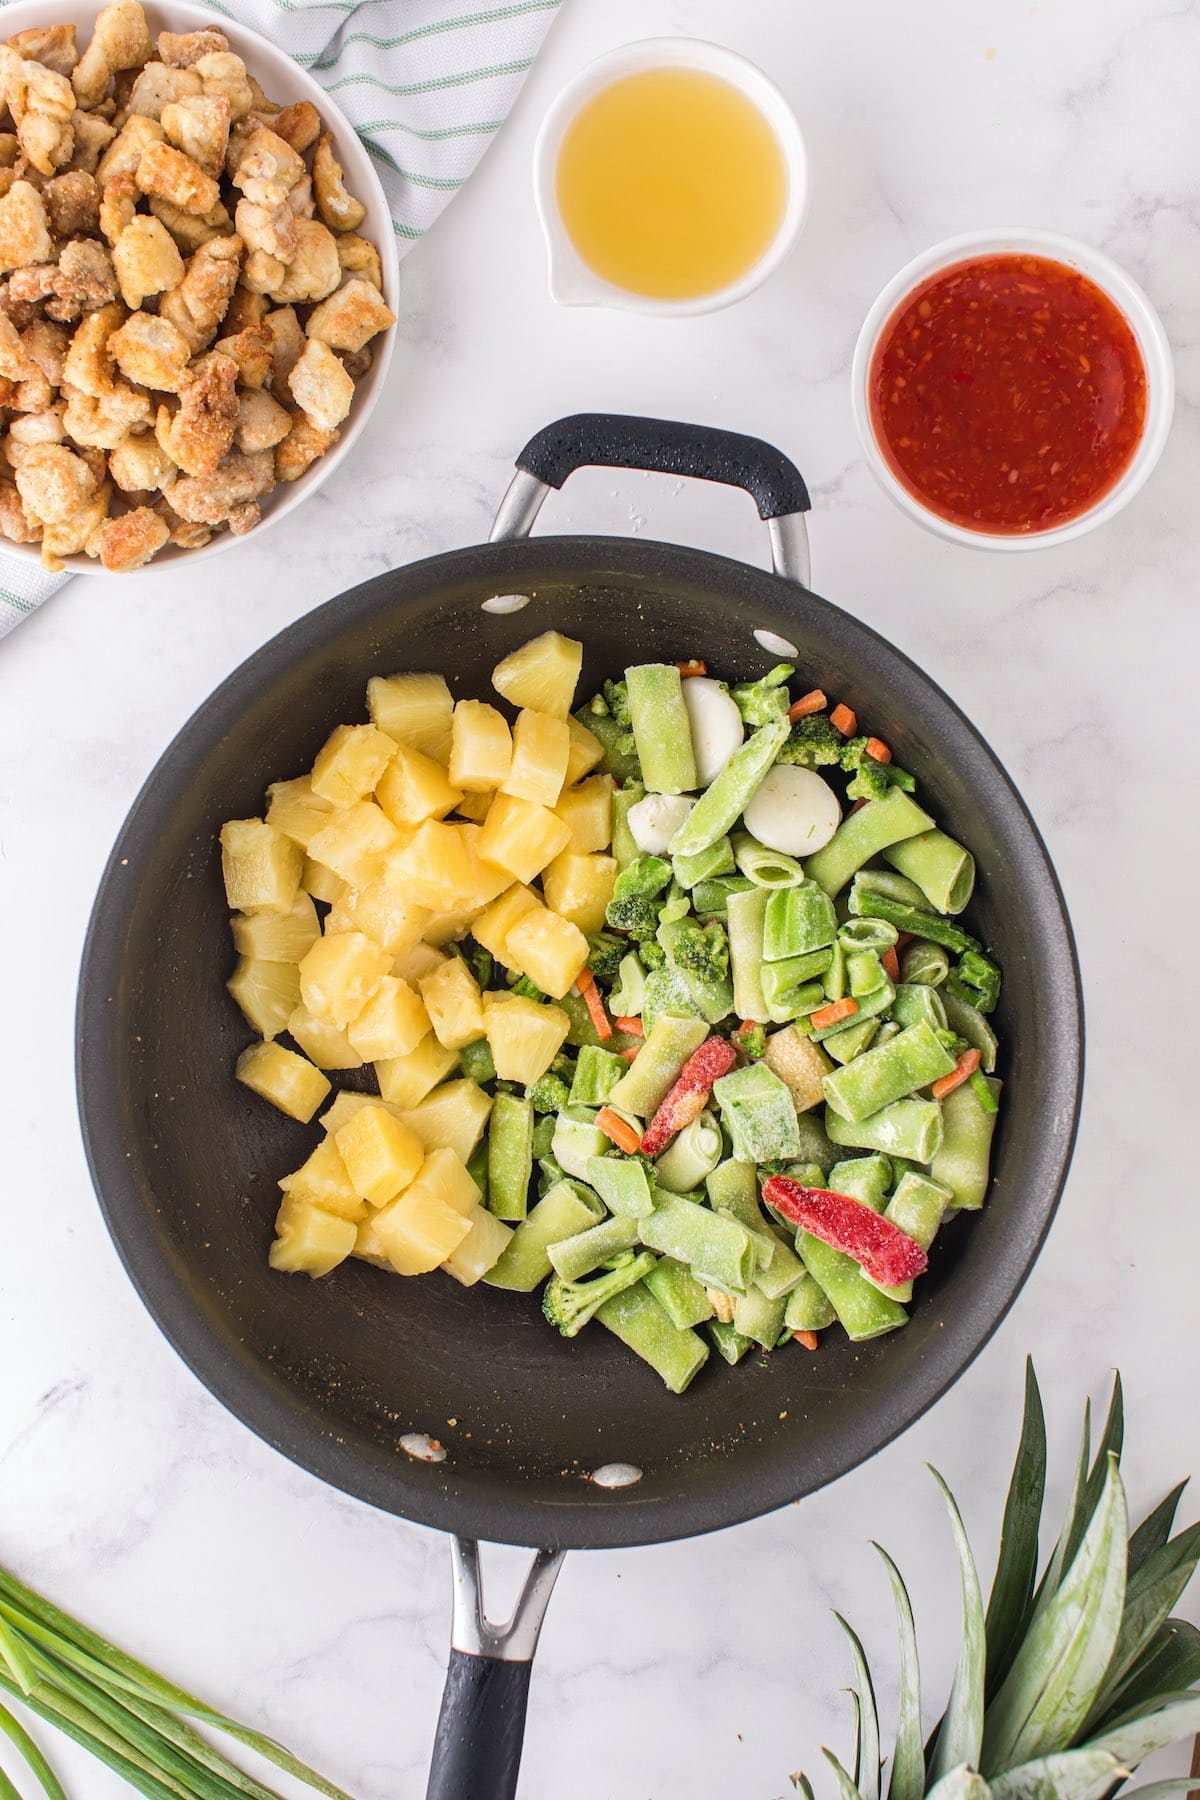 avocado oil, frozen vegetables, and pineapple in the pan